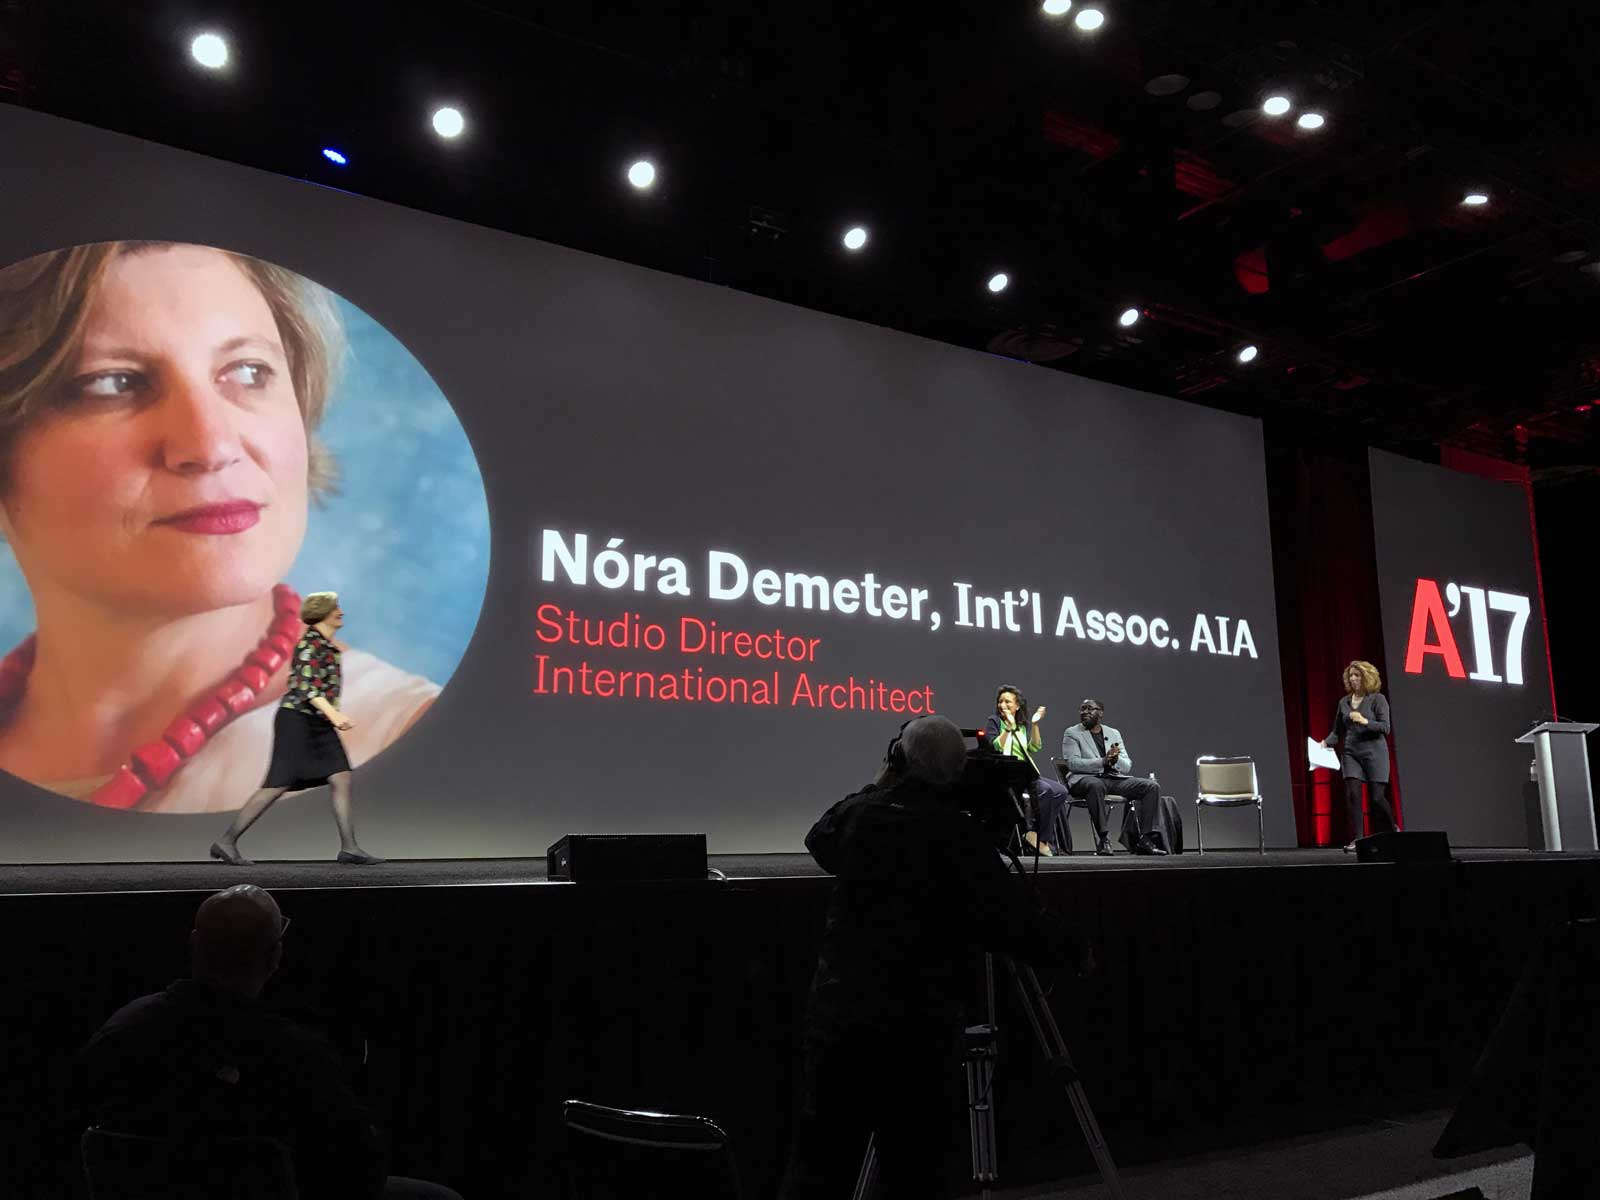 Nora Demeter participating in discussions at AIA 2017 Conference